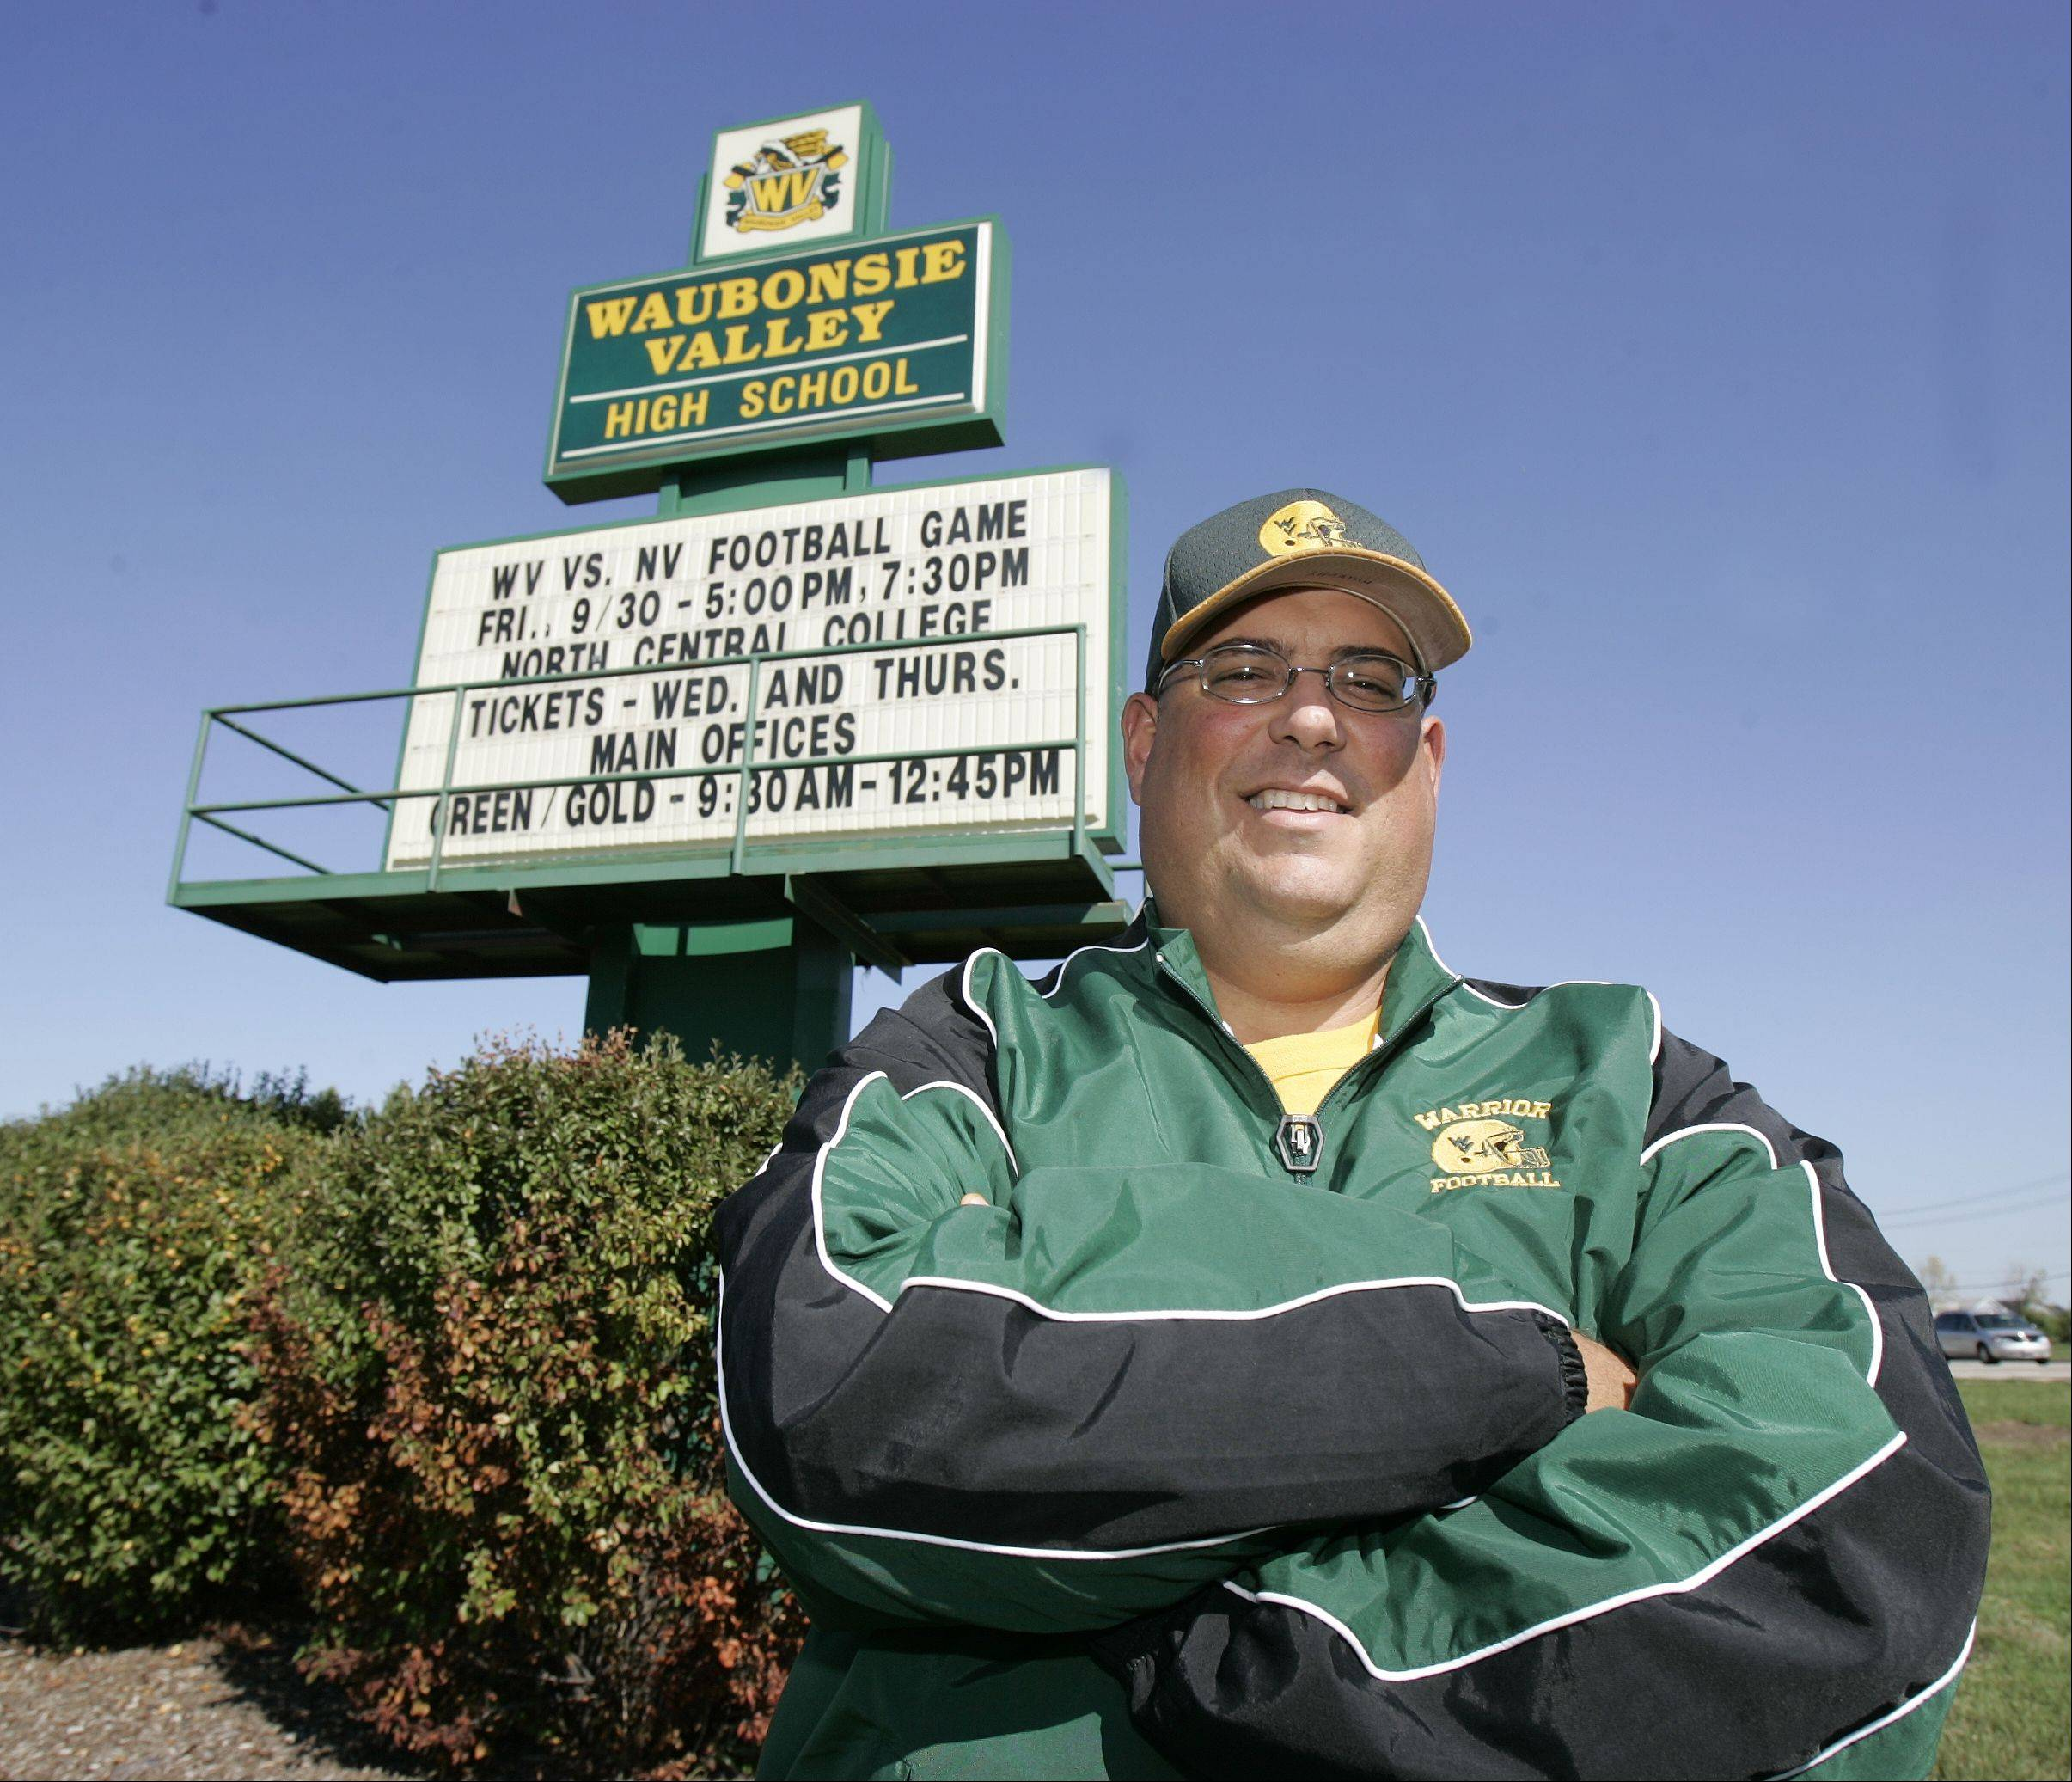 Waubonsie Valley Head football coach Paul Murphy. Lee photo